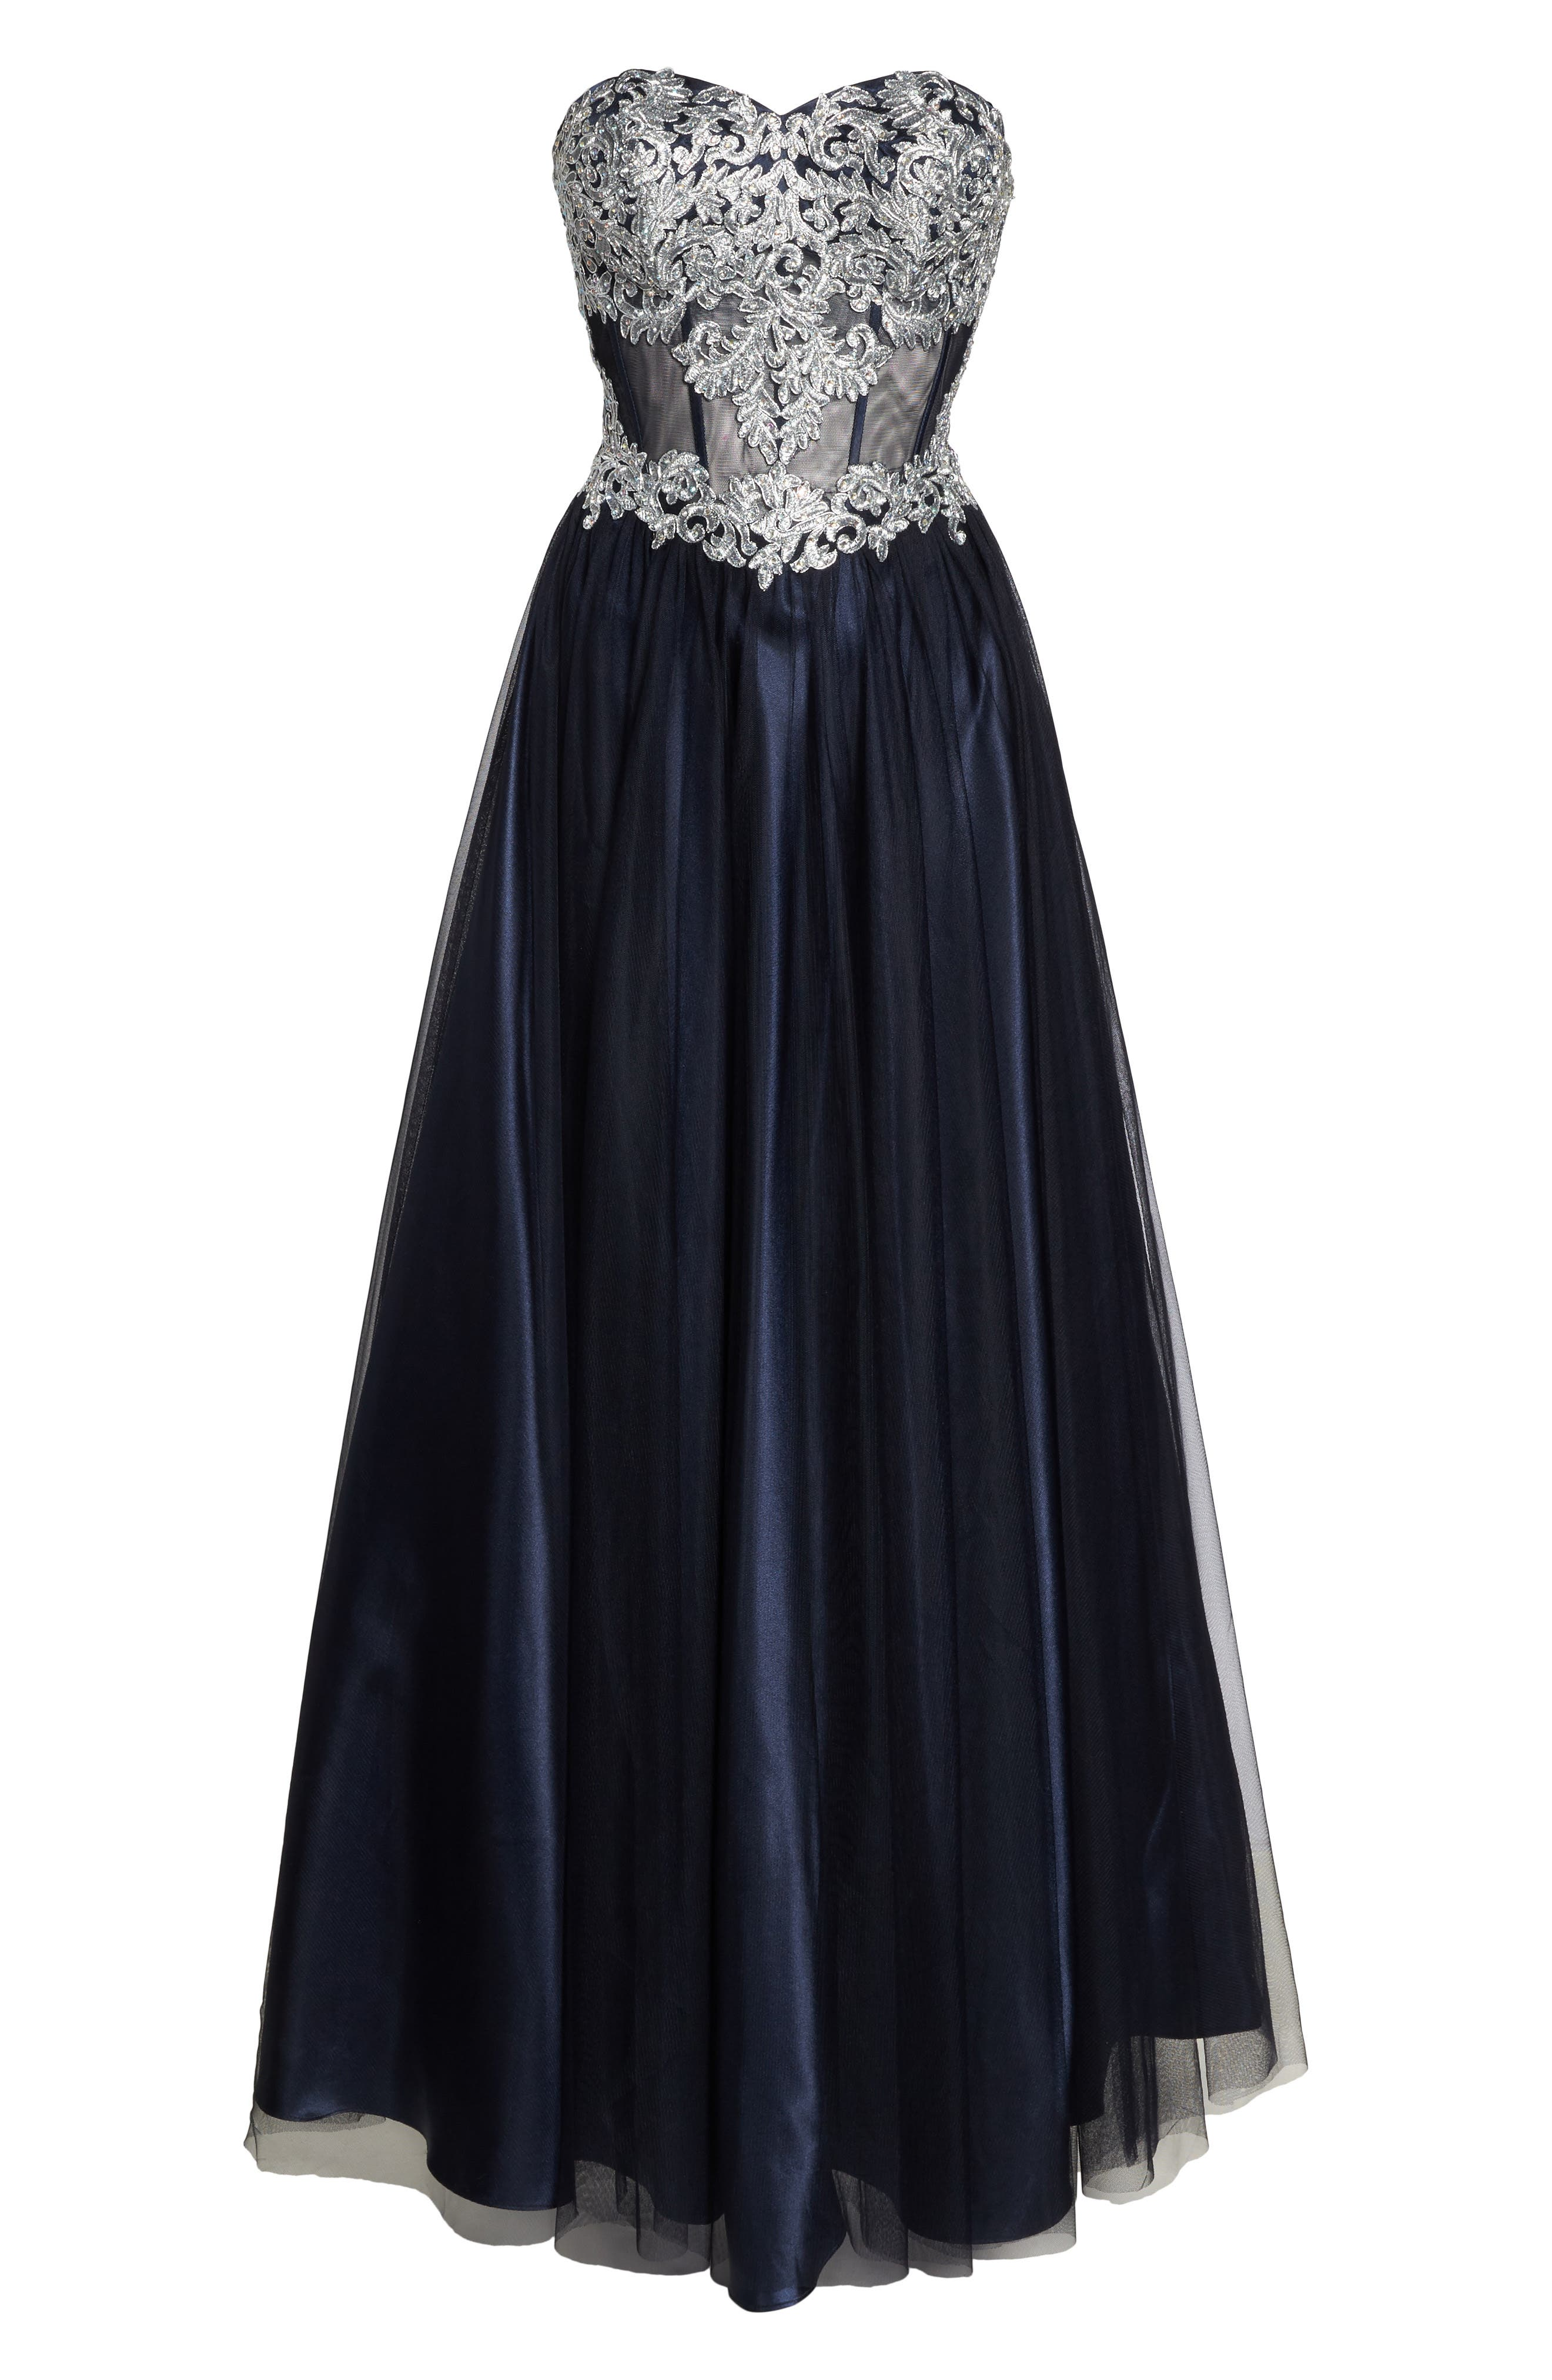 Embellished Corset Ballgown,                             Alternate thumbnail 6, color,                             400